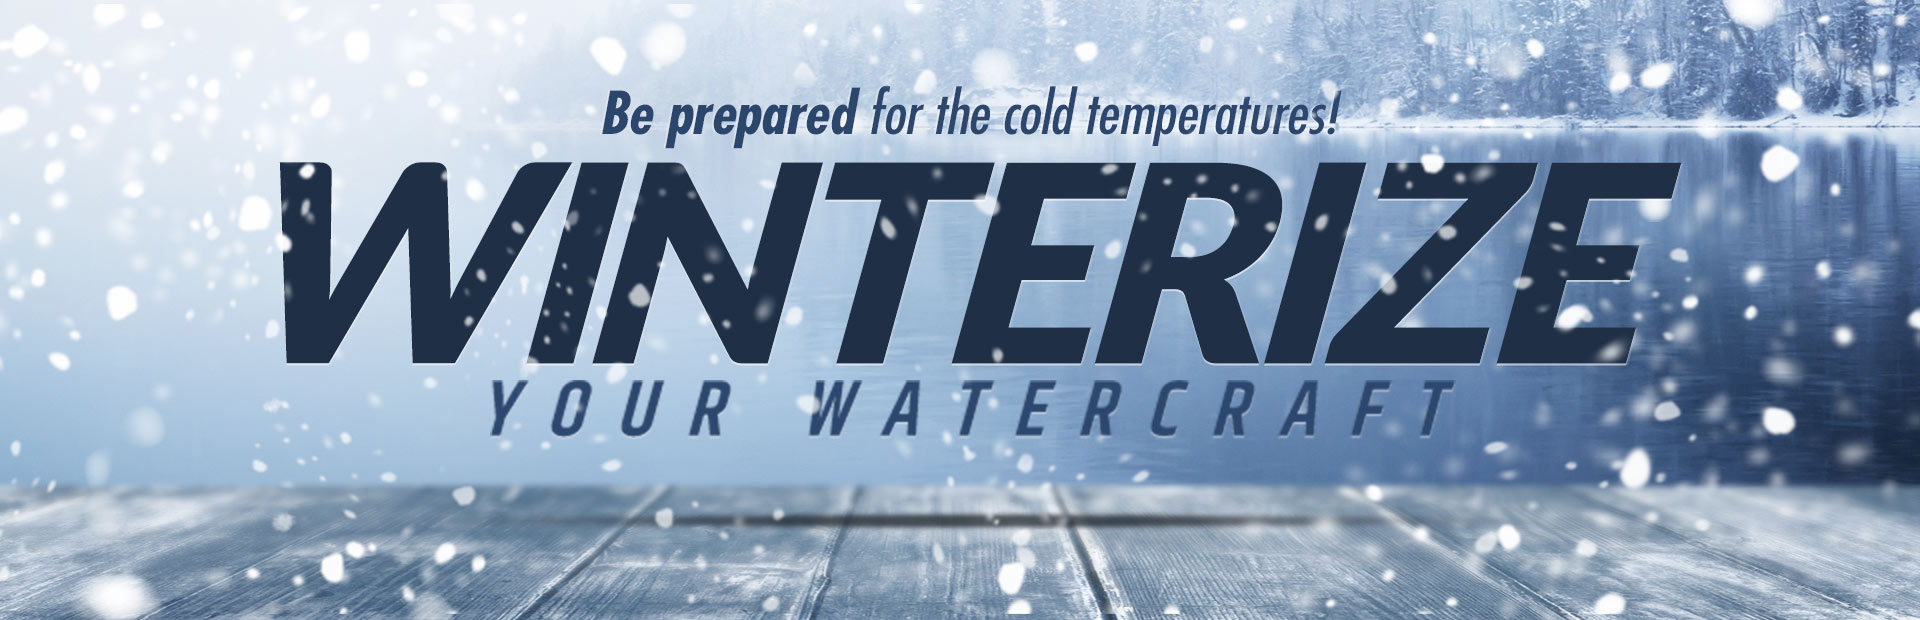 Winterize Your Watercraft: Contact us for details.